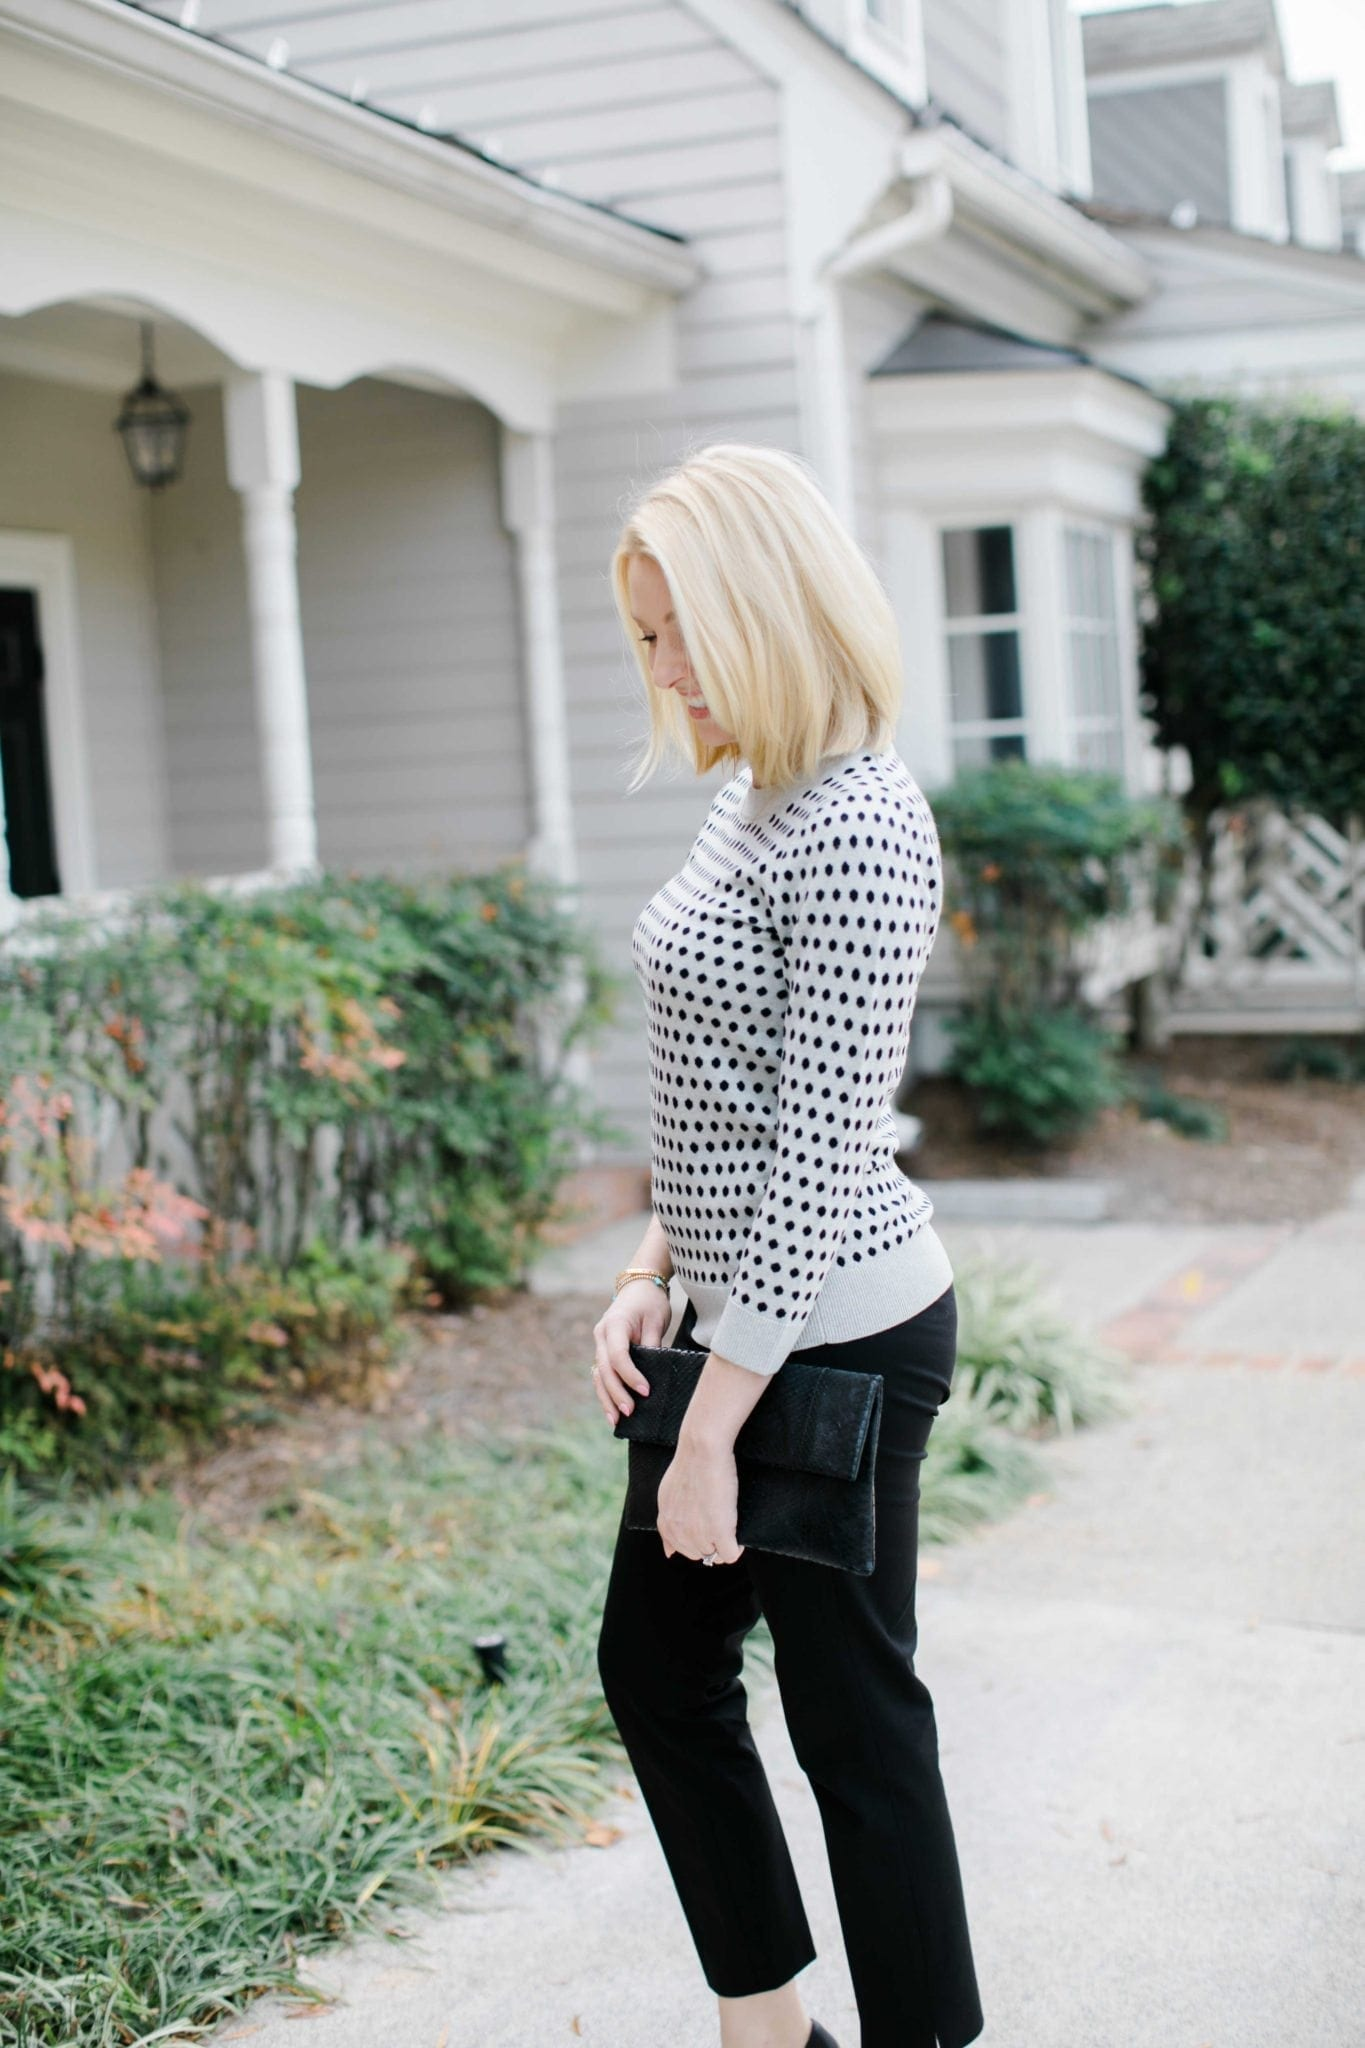 blonde girl wearing polka dot sweater and carrying a black snakeskin clutch purse